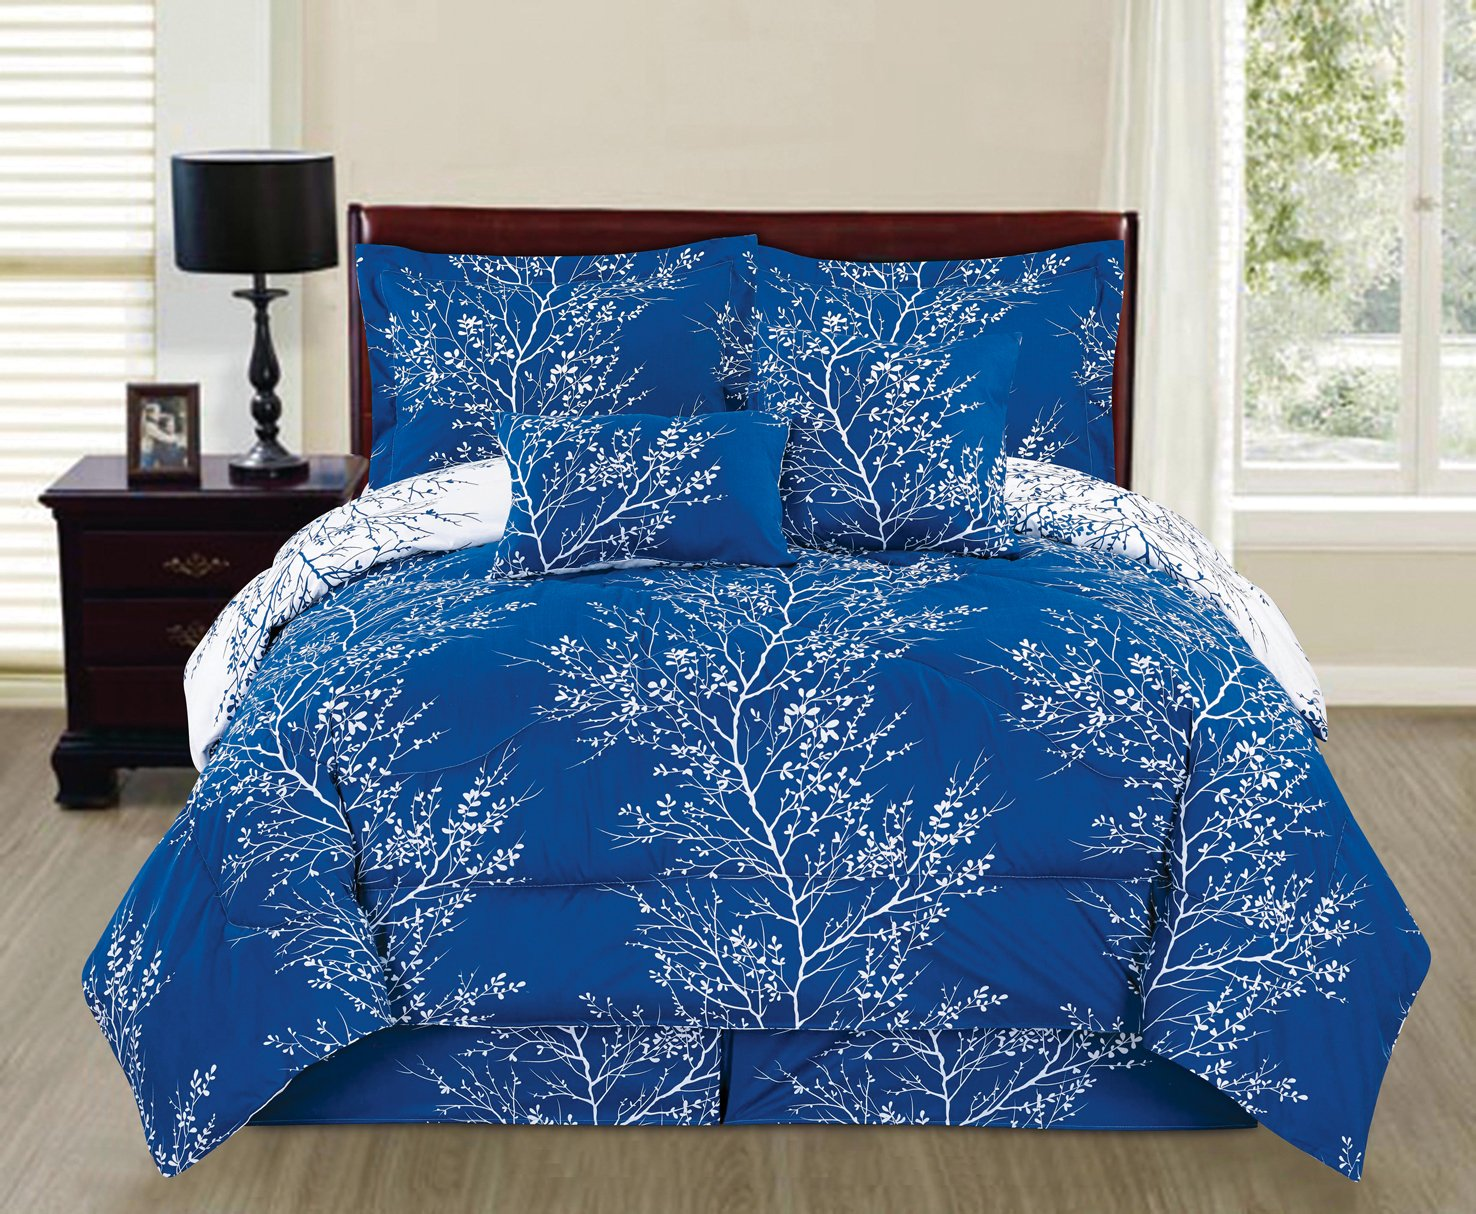 Royal blue bedding queen - 6 Piece Reversible Branches Comforter Set New Bedding Queen Royal Blue